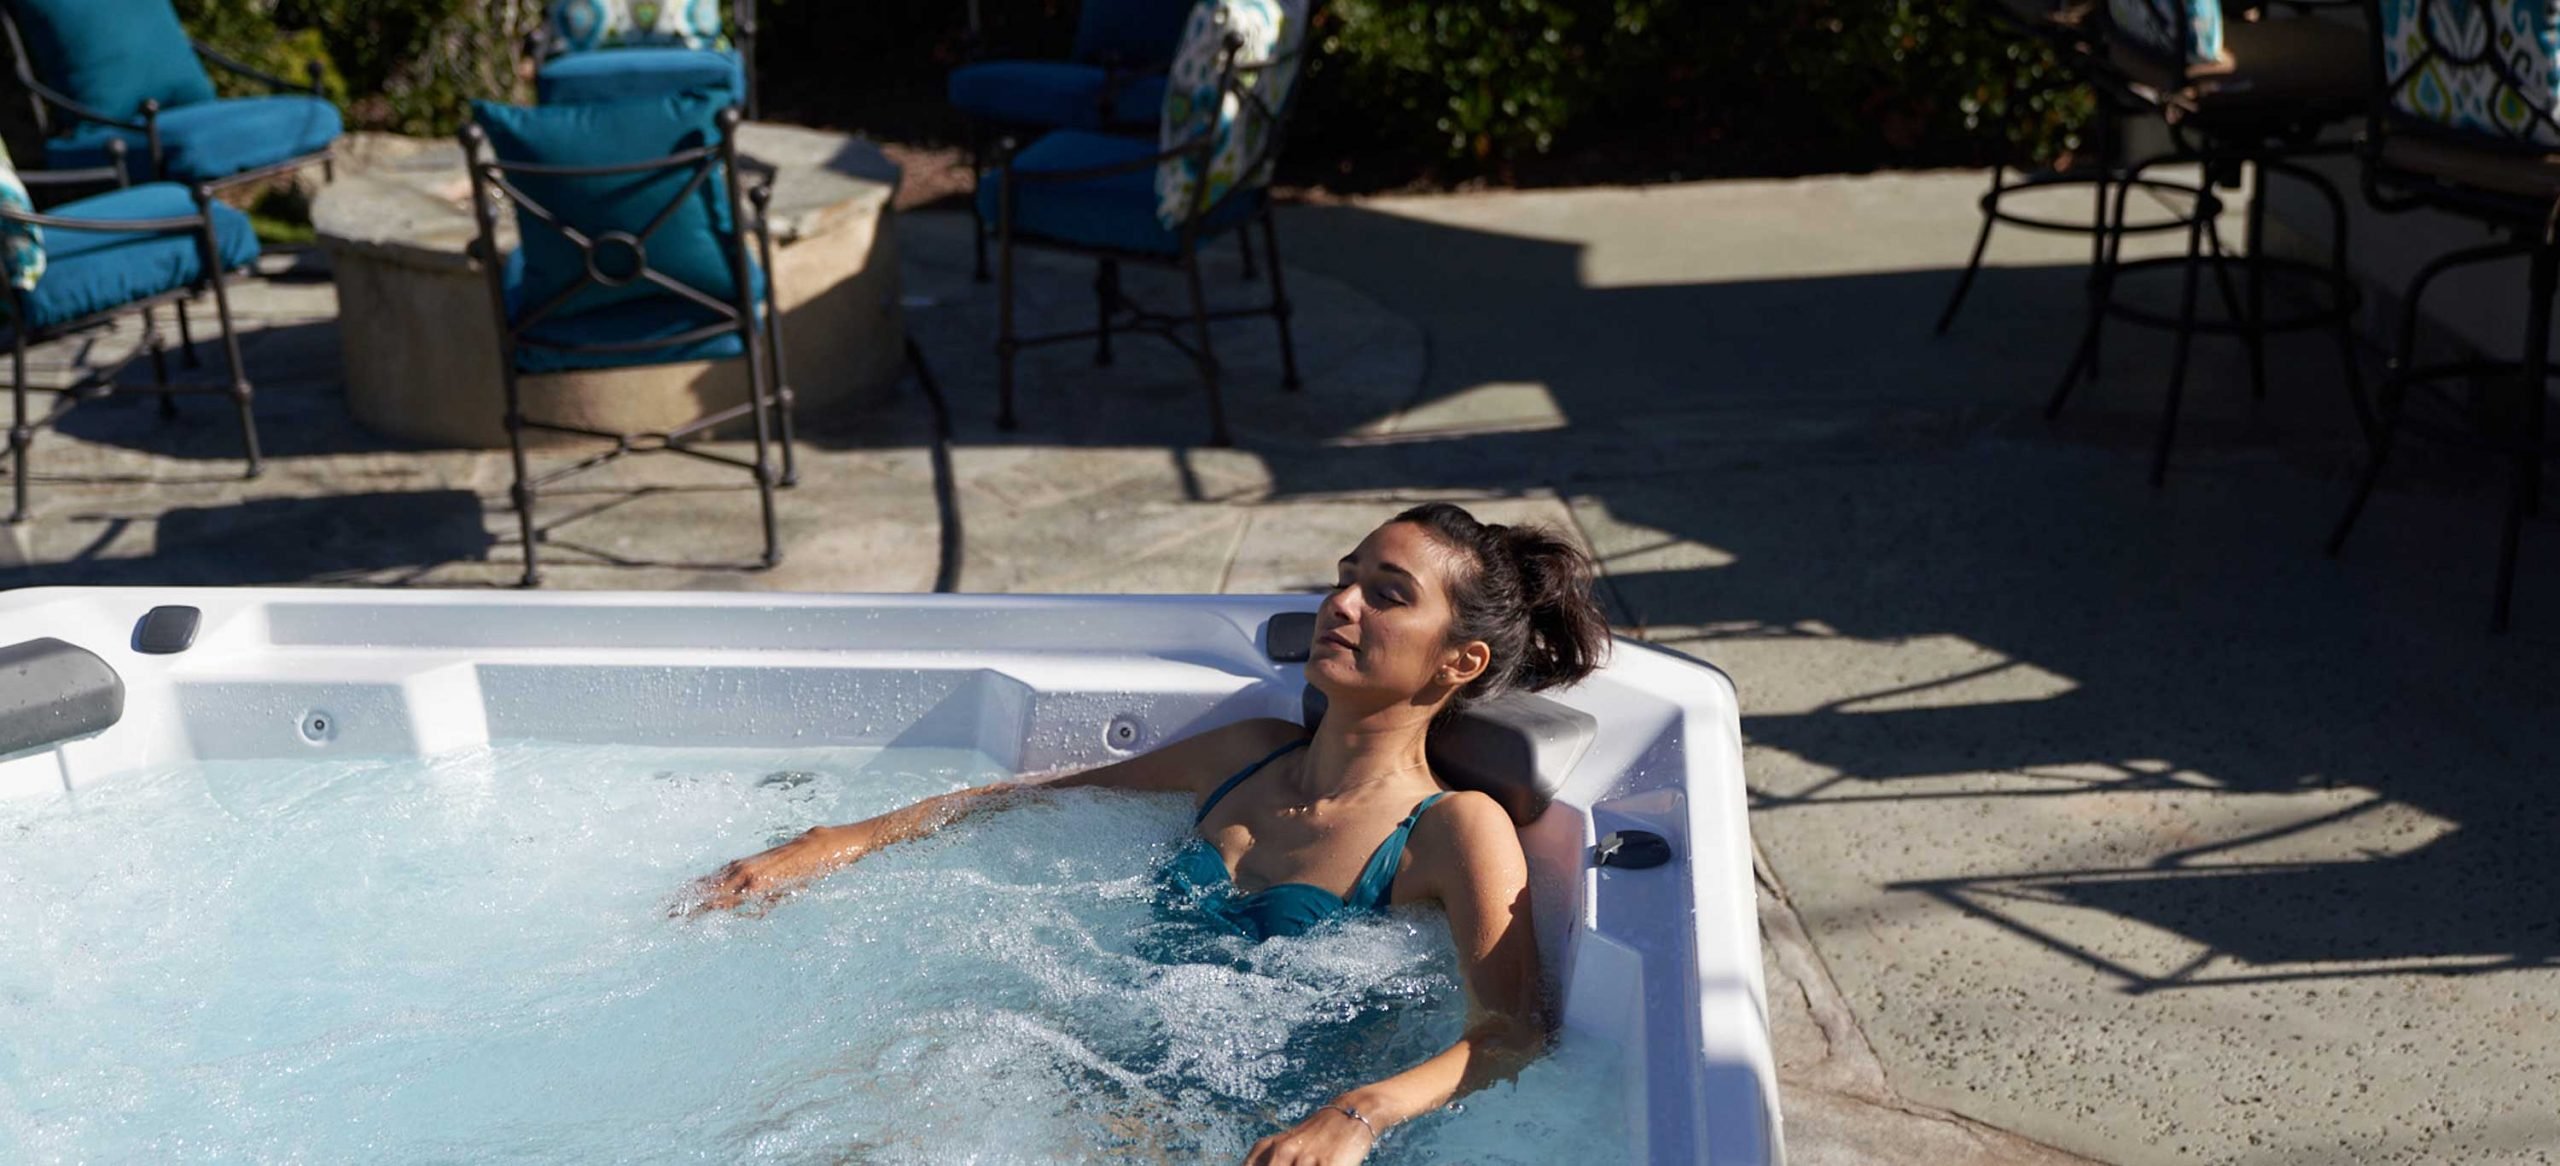 How to Choose Your Hot Tub Foundation